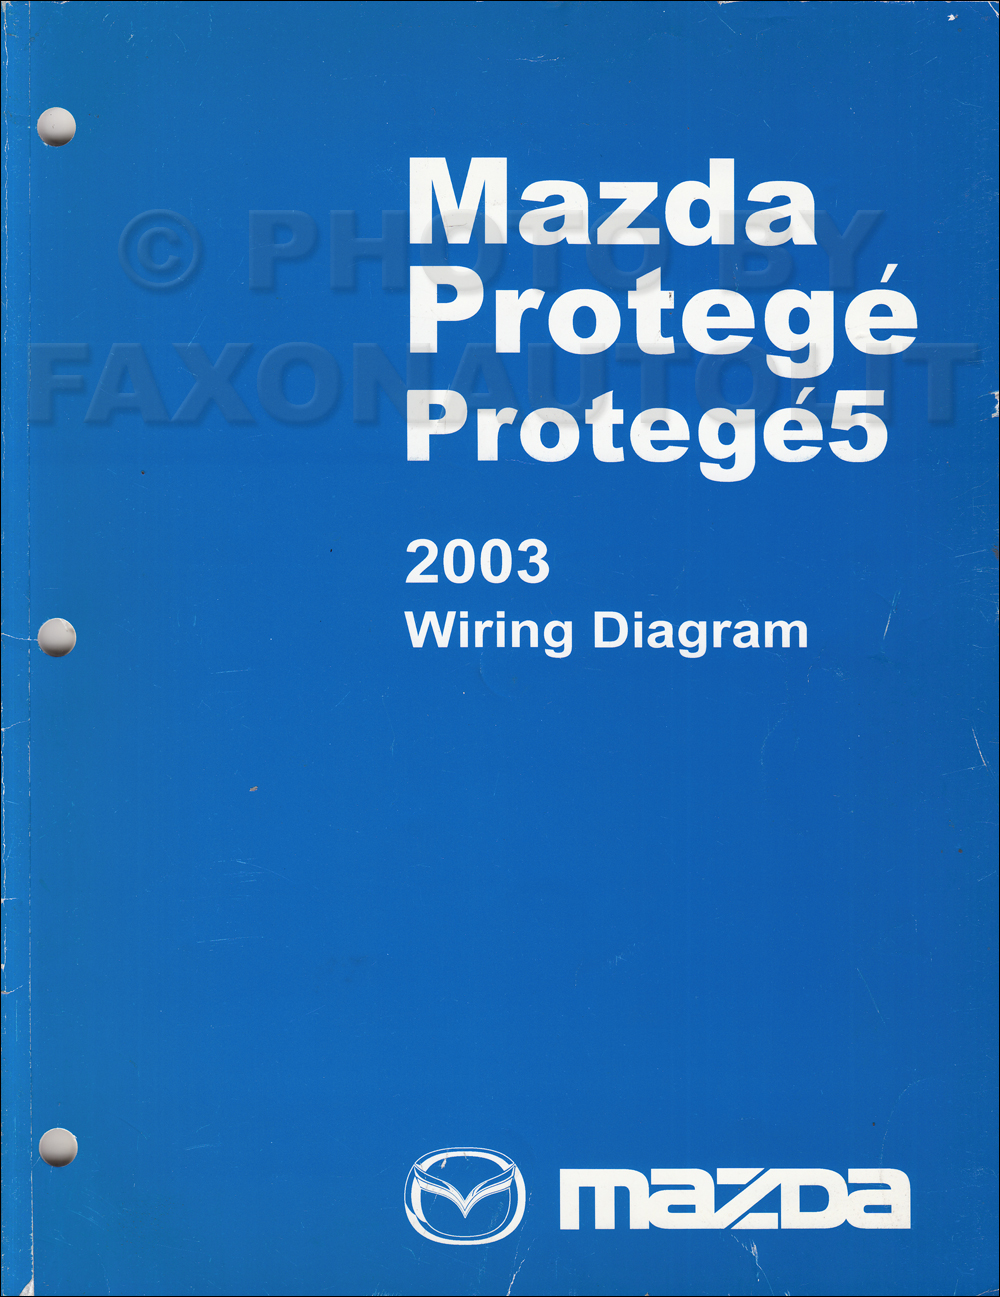 2003 Mazda Tribute 3 0 Pcm Wiring Diagram Libraries Library2003 Protege And Protege5